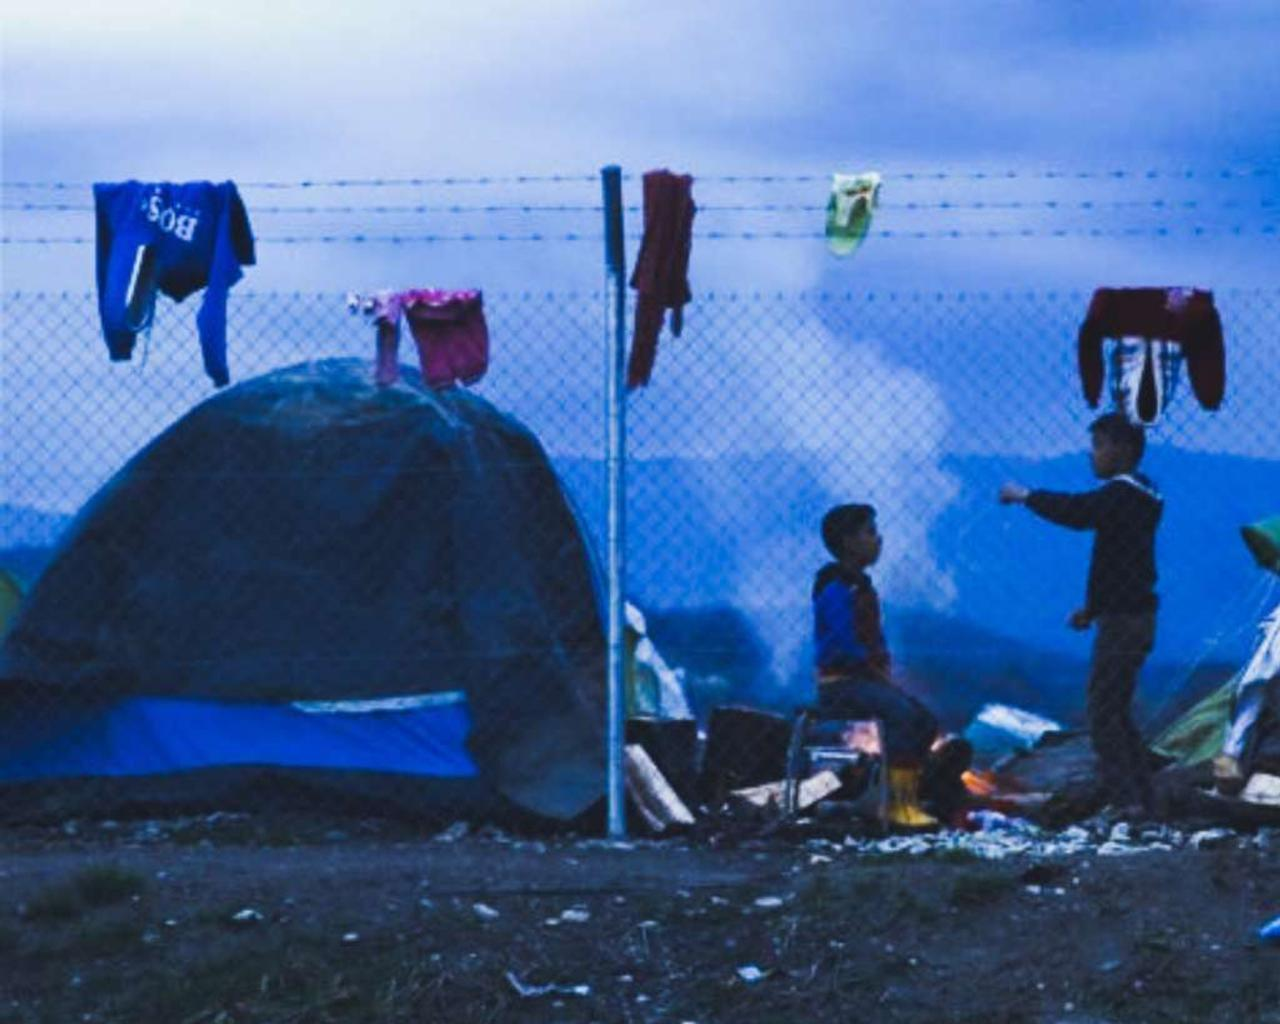 Head of EU foreign policy says migration is an essential issue for the whole of Europe.